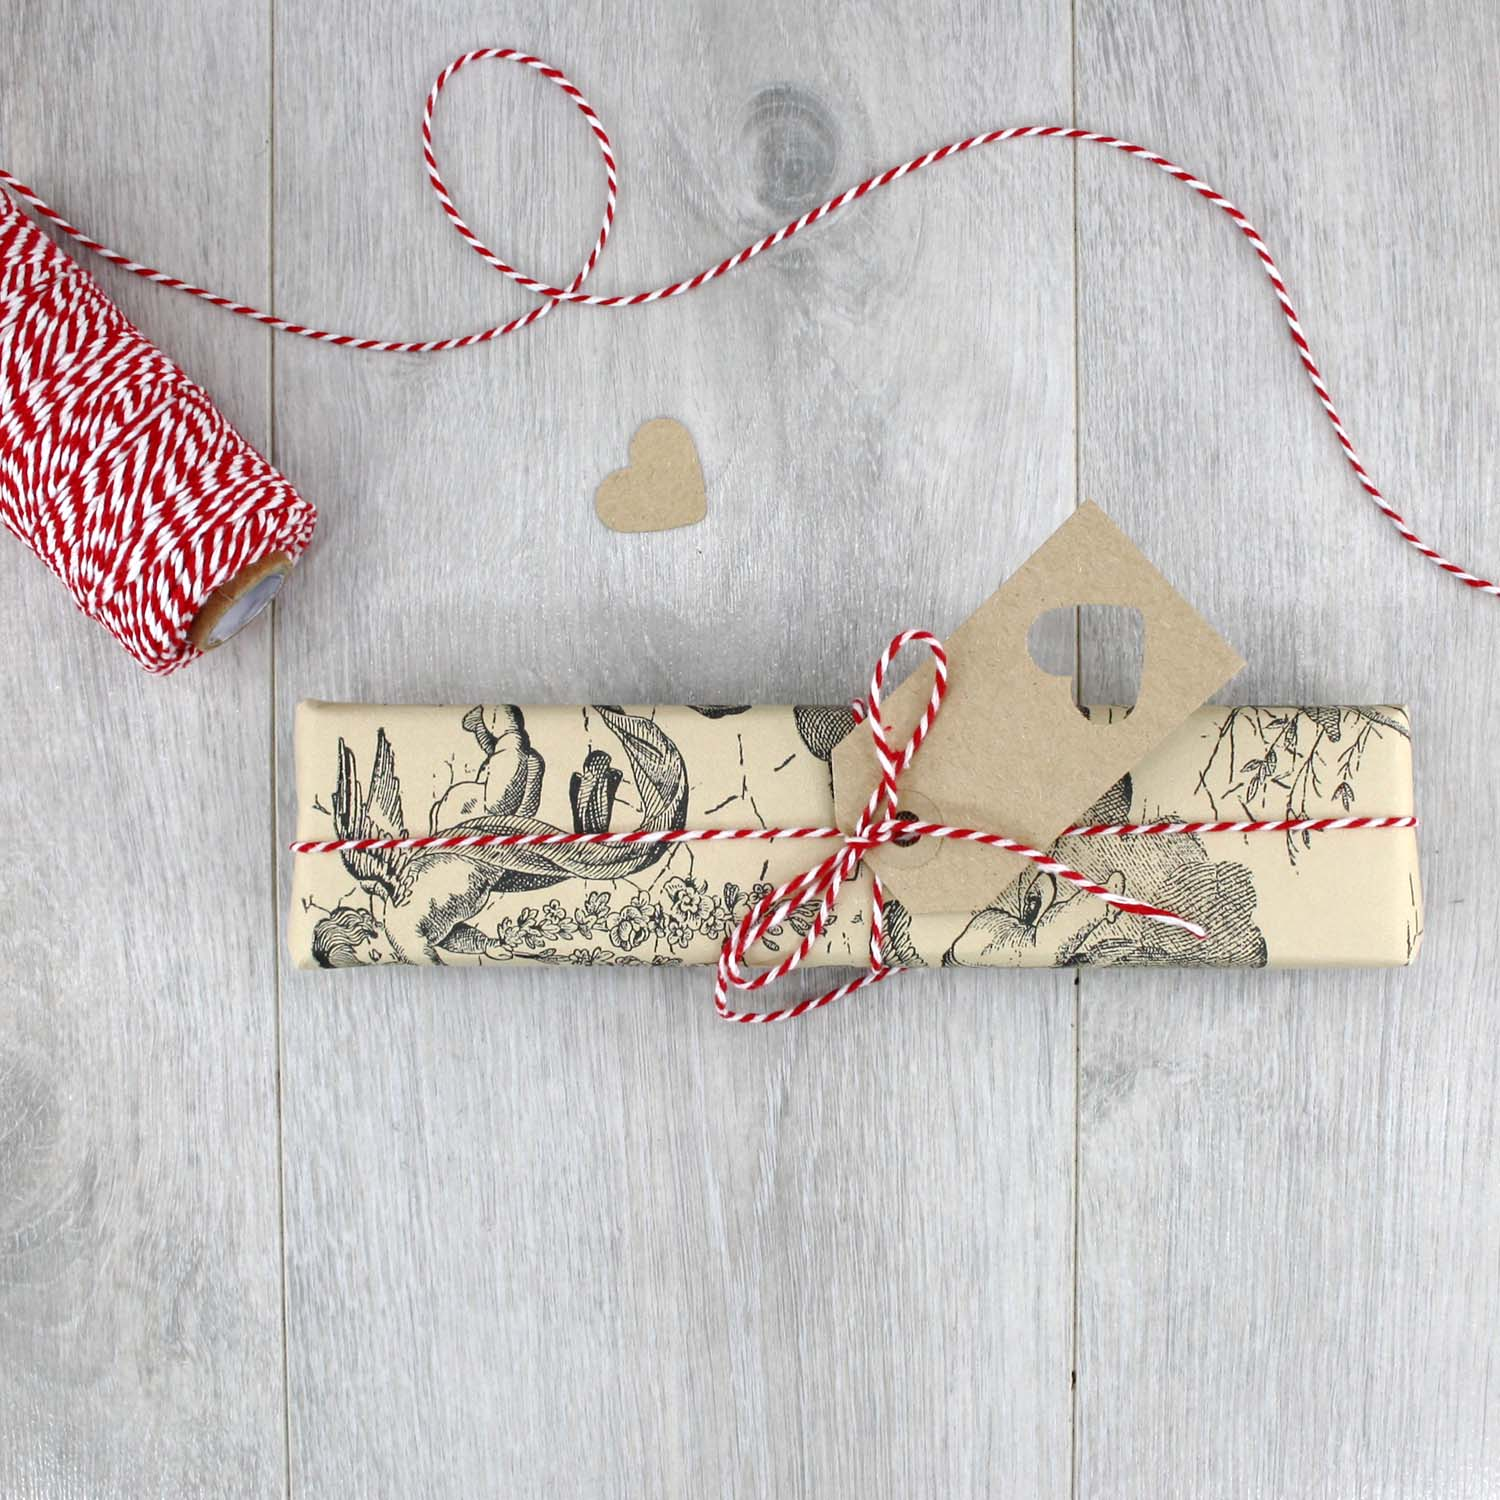 Road Map Gift Wrap Road Map Gift Wrap Pictures Photos and Images for ...